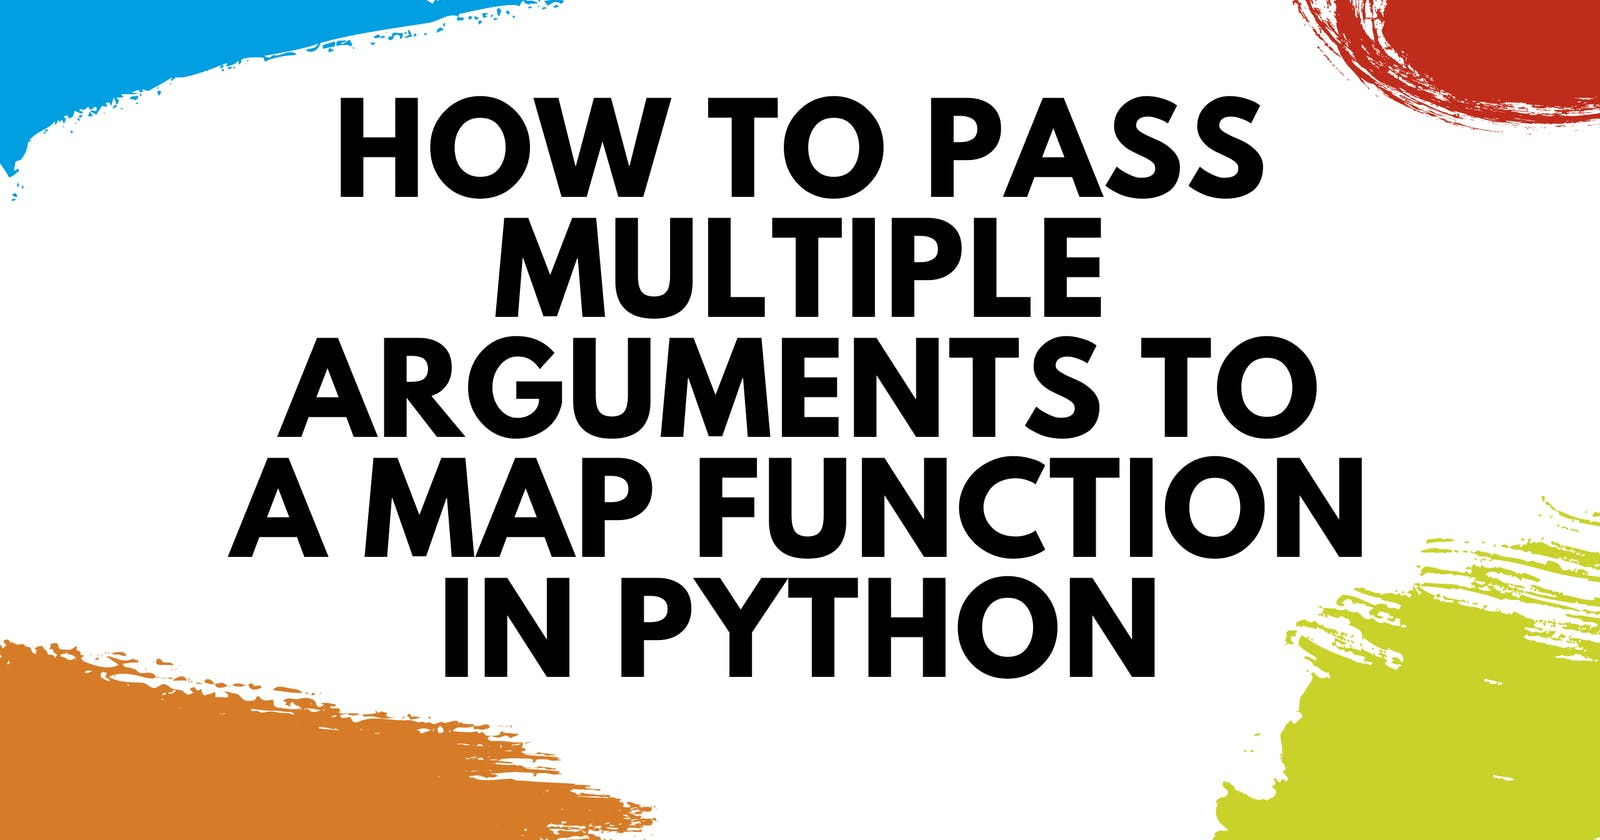 How to Pass Multiple Arguments to a map Function in Python